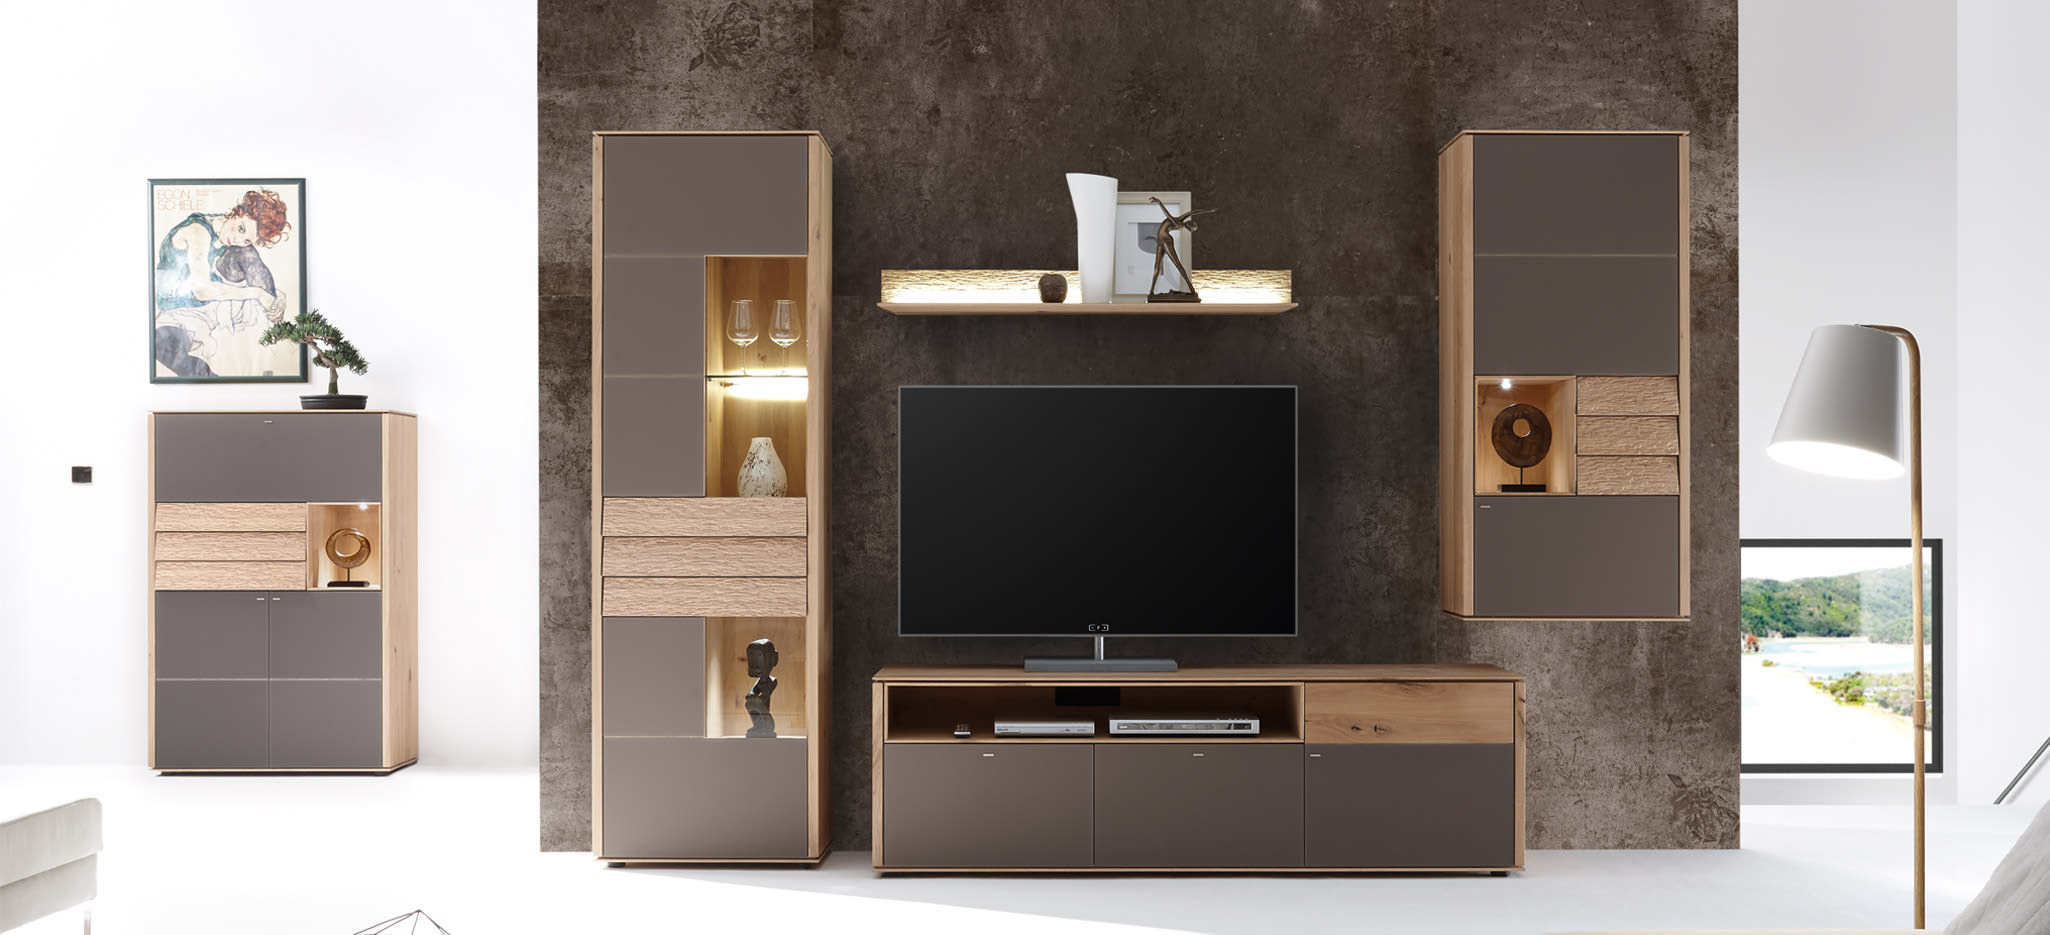 Design wohnwand straight  Decker solid wood furniture » Alivio living room furniture ✓